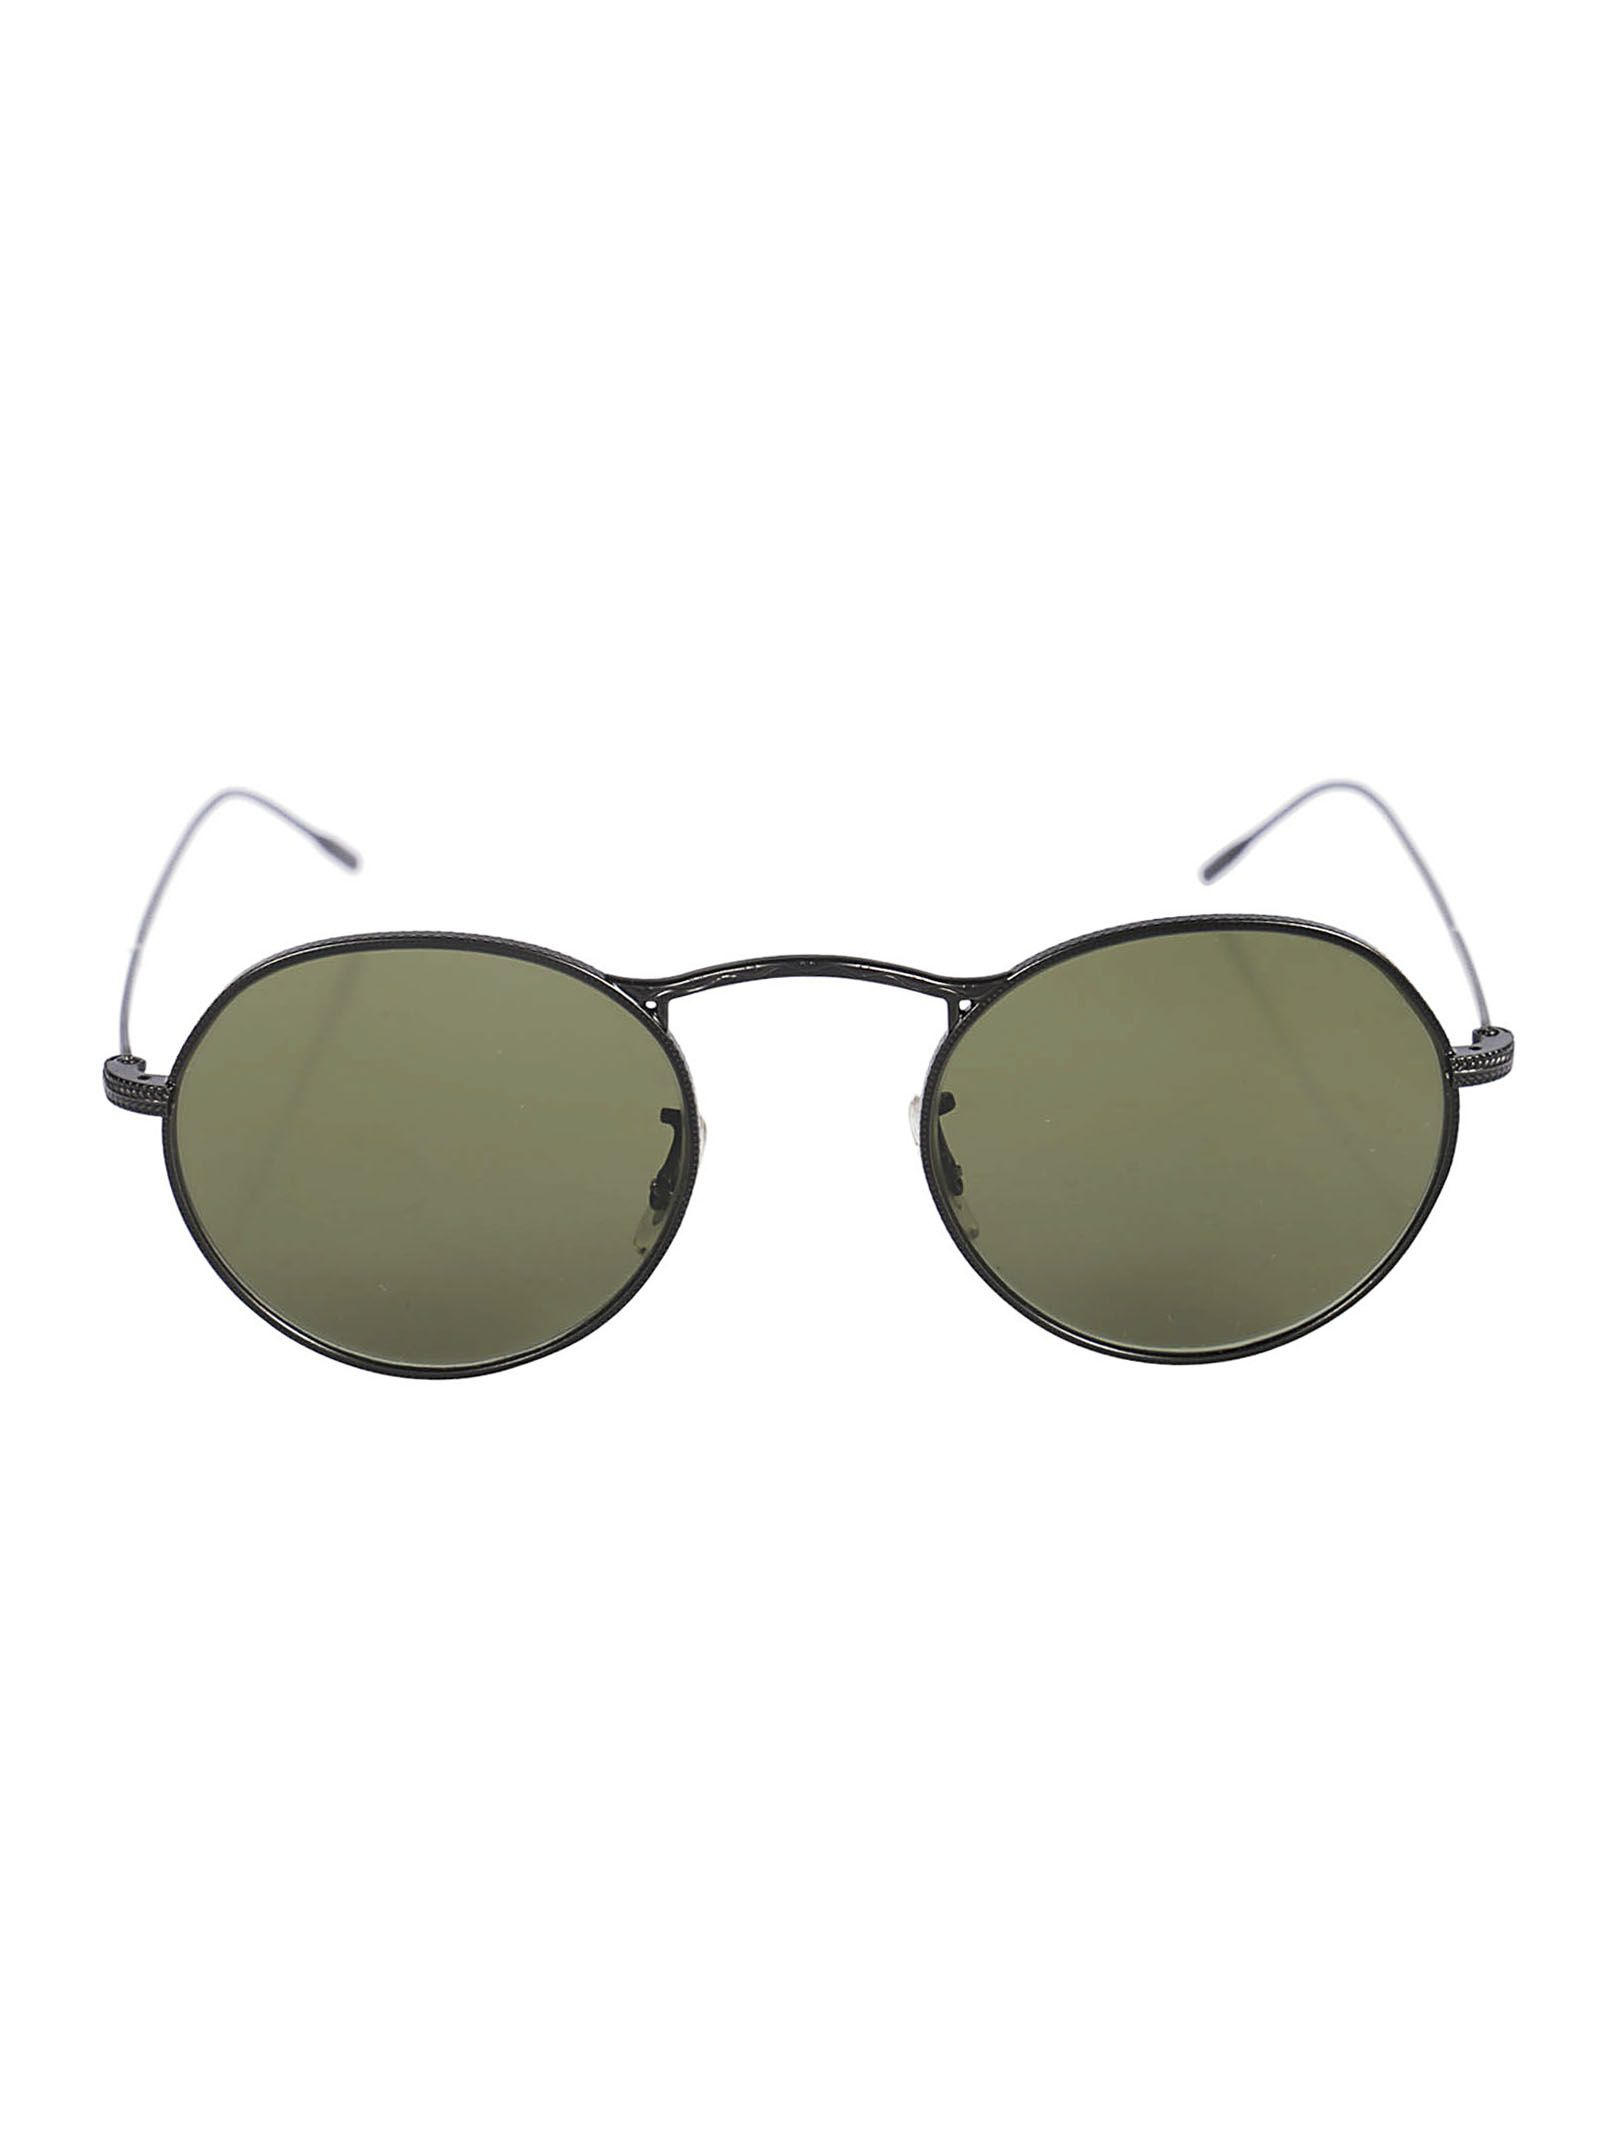 Oliver Peoples M-4 30th Sunglasses